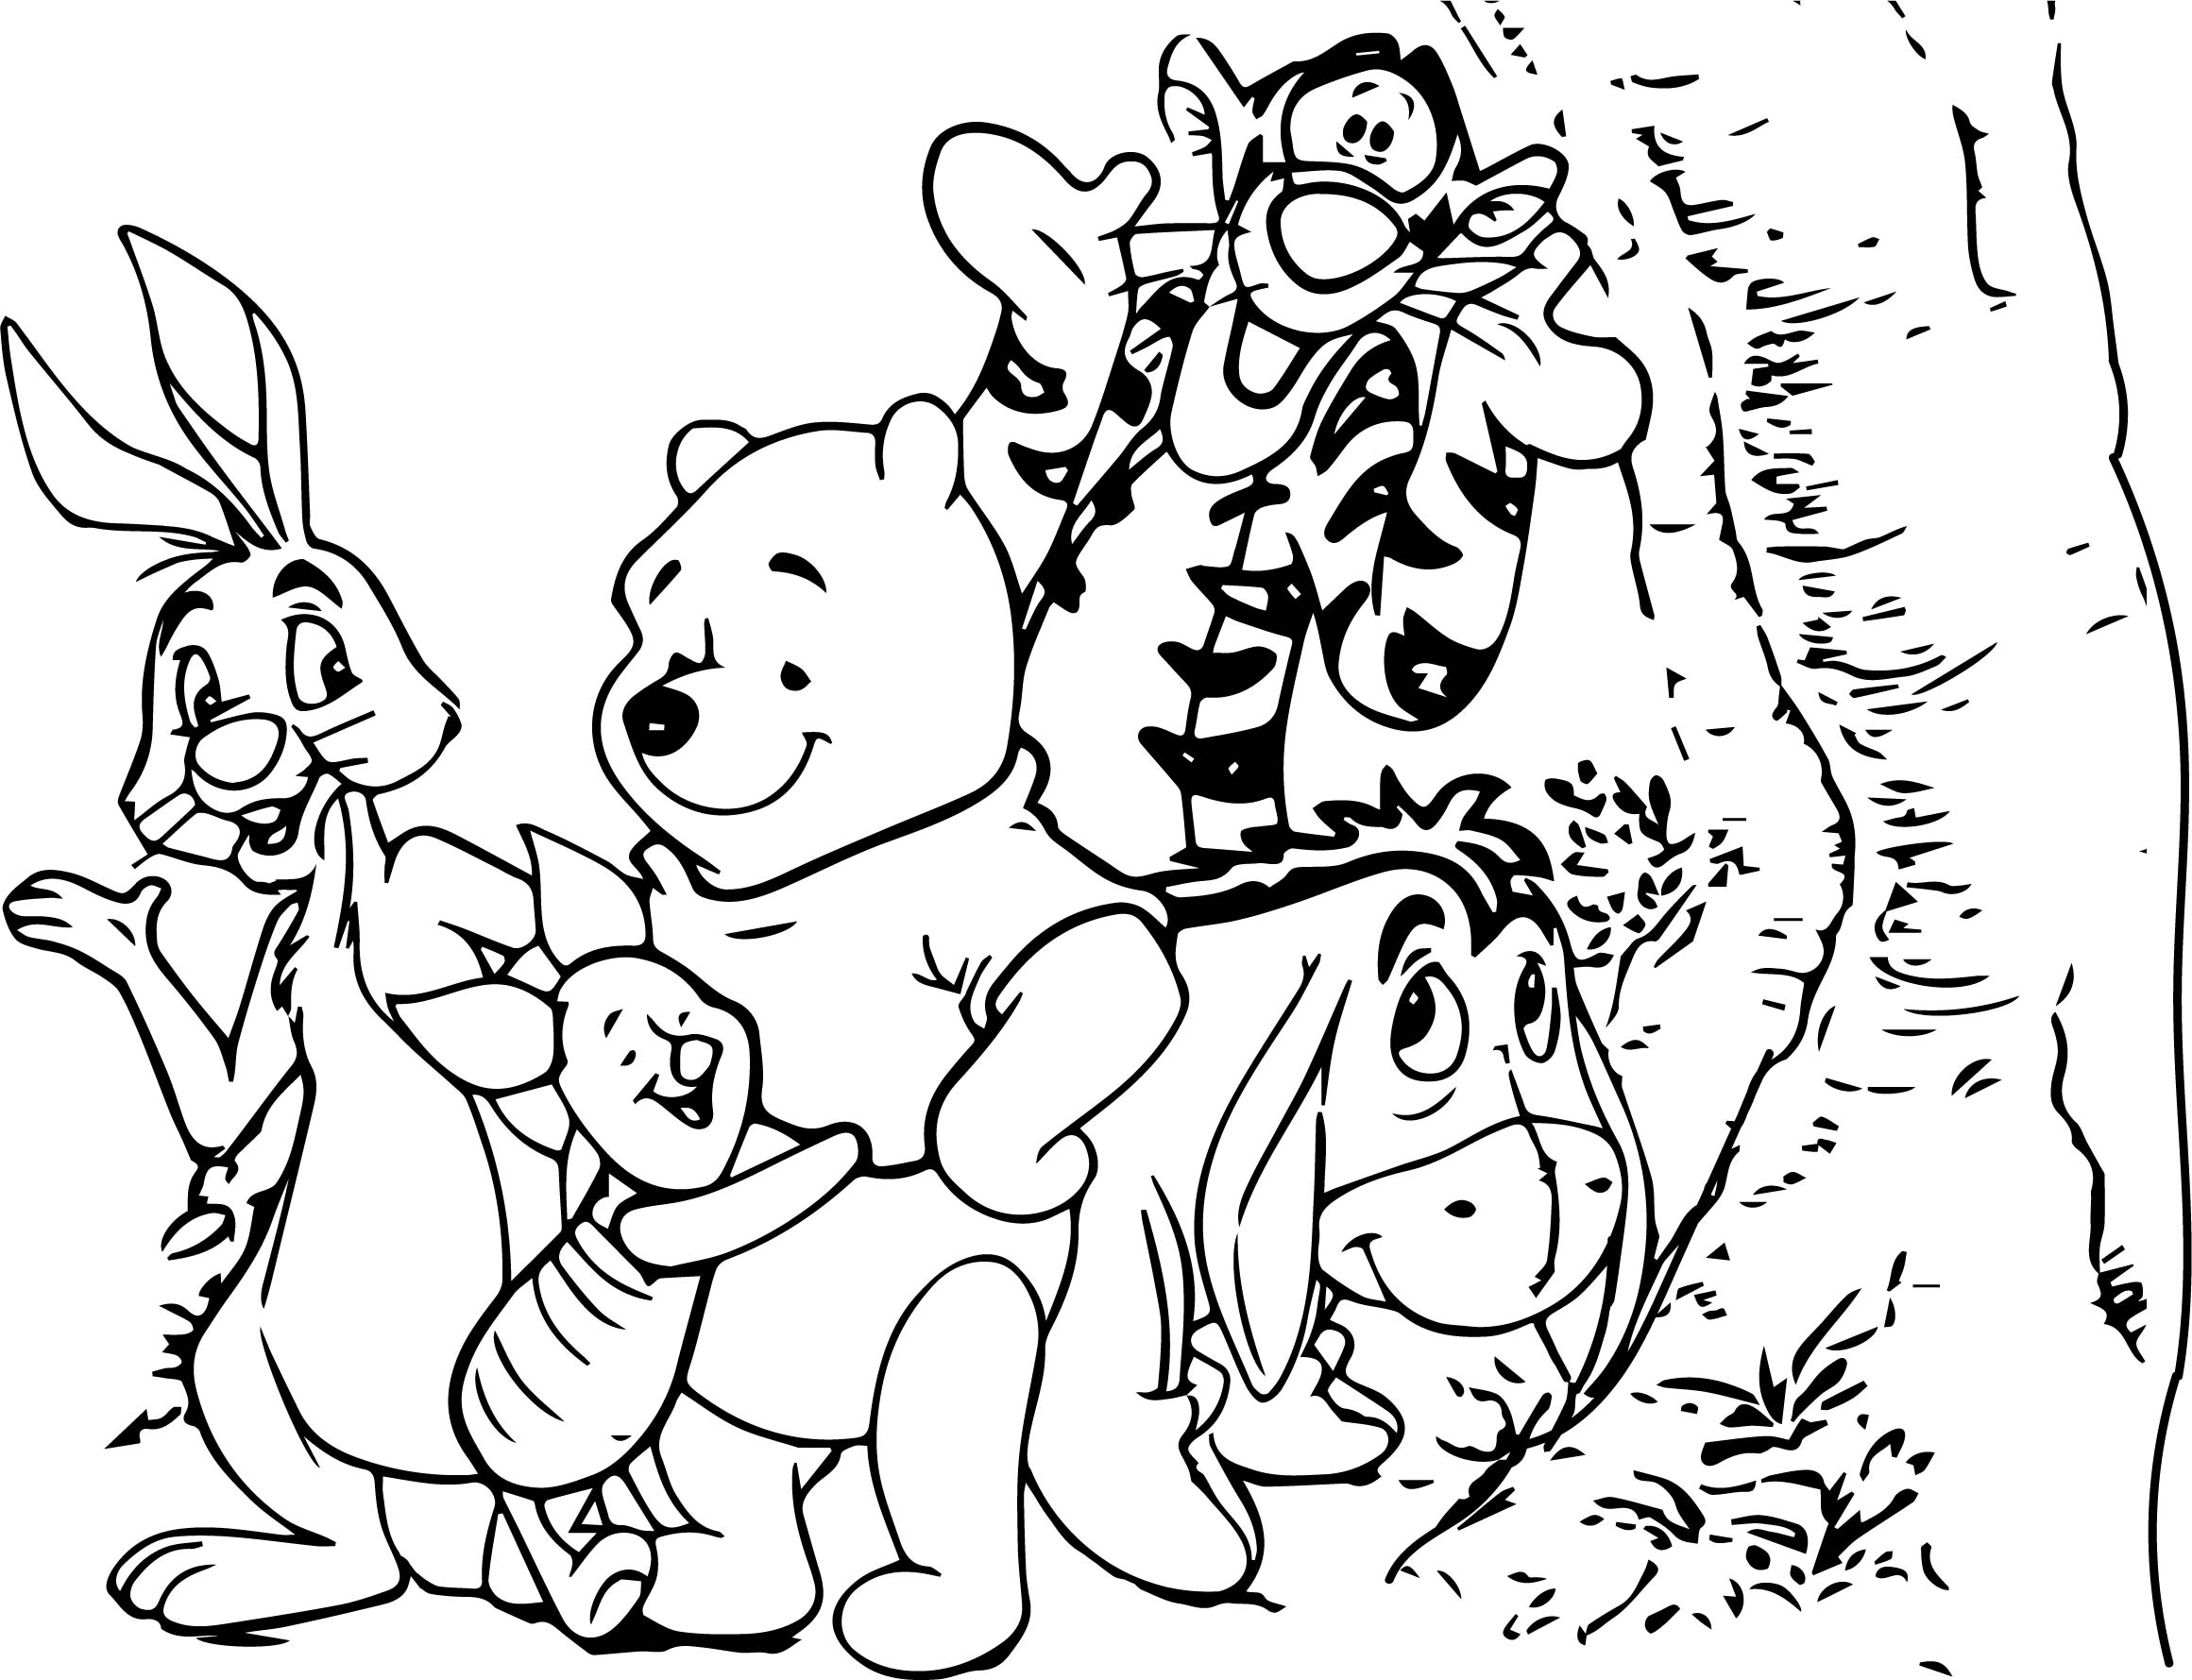 Baby winnie pooh and friends characters free coloring for Winnie the pooh and friends coloring pages